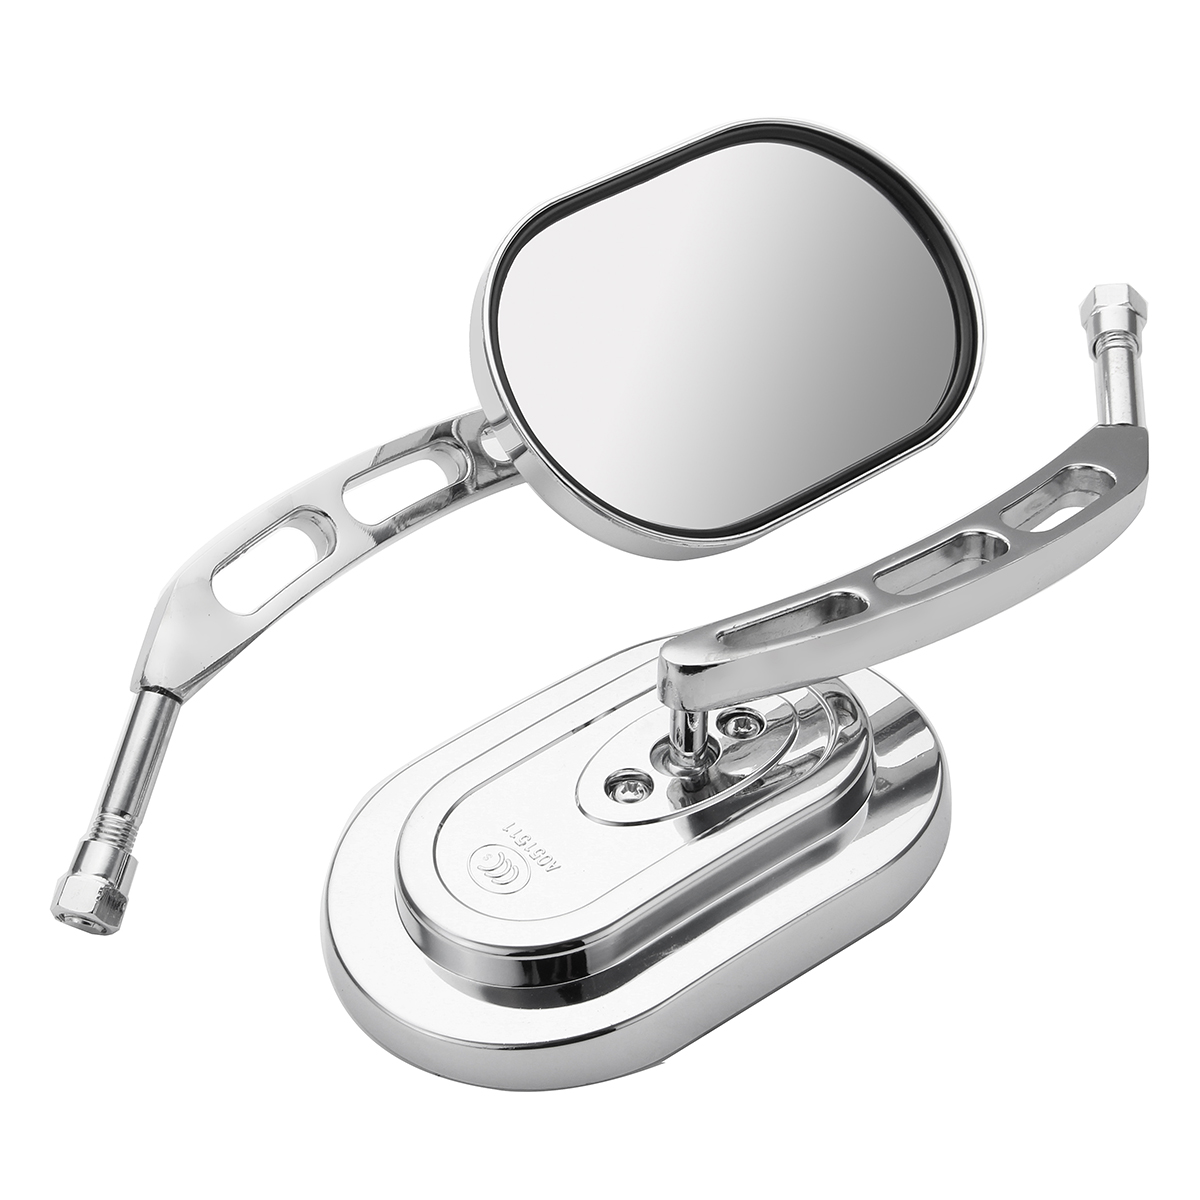 10mm Universal Chrome Motorcycle Mirrors Rear View Side Mirror F